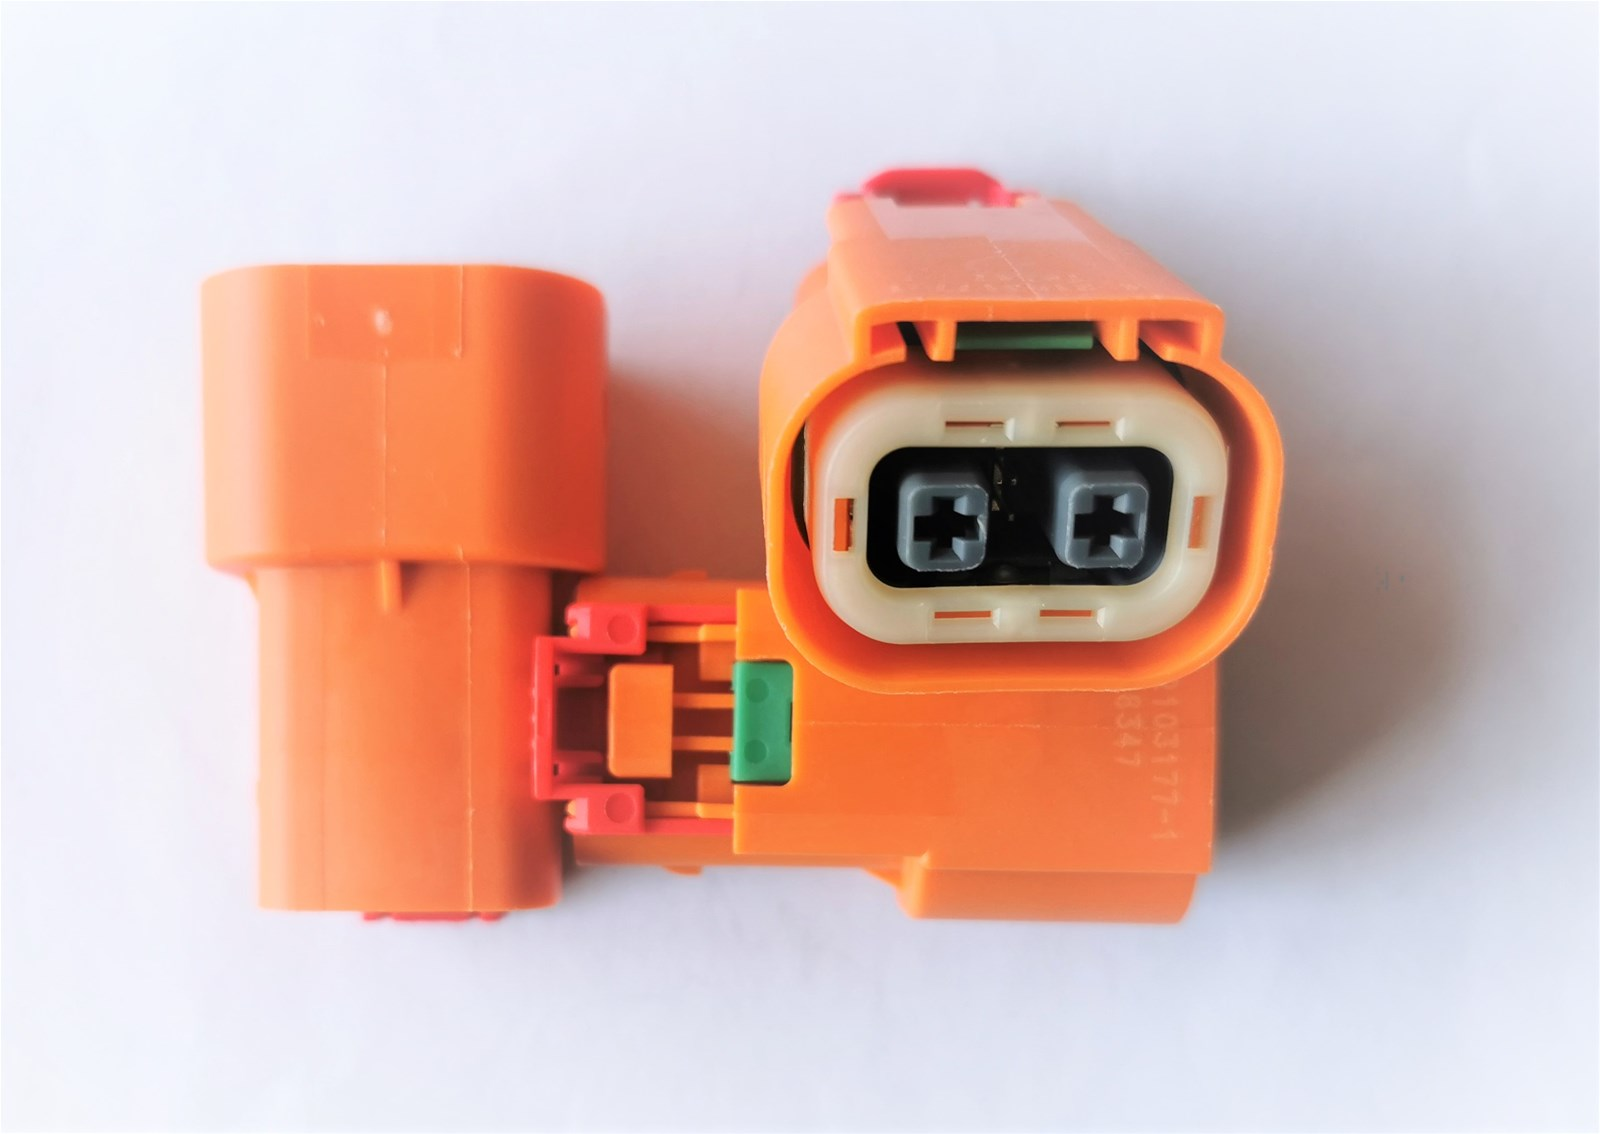 Connector for automobilebattery pack